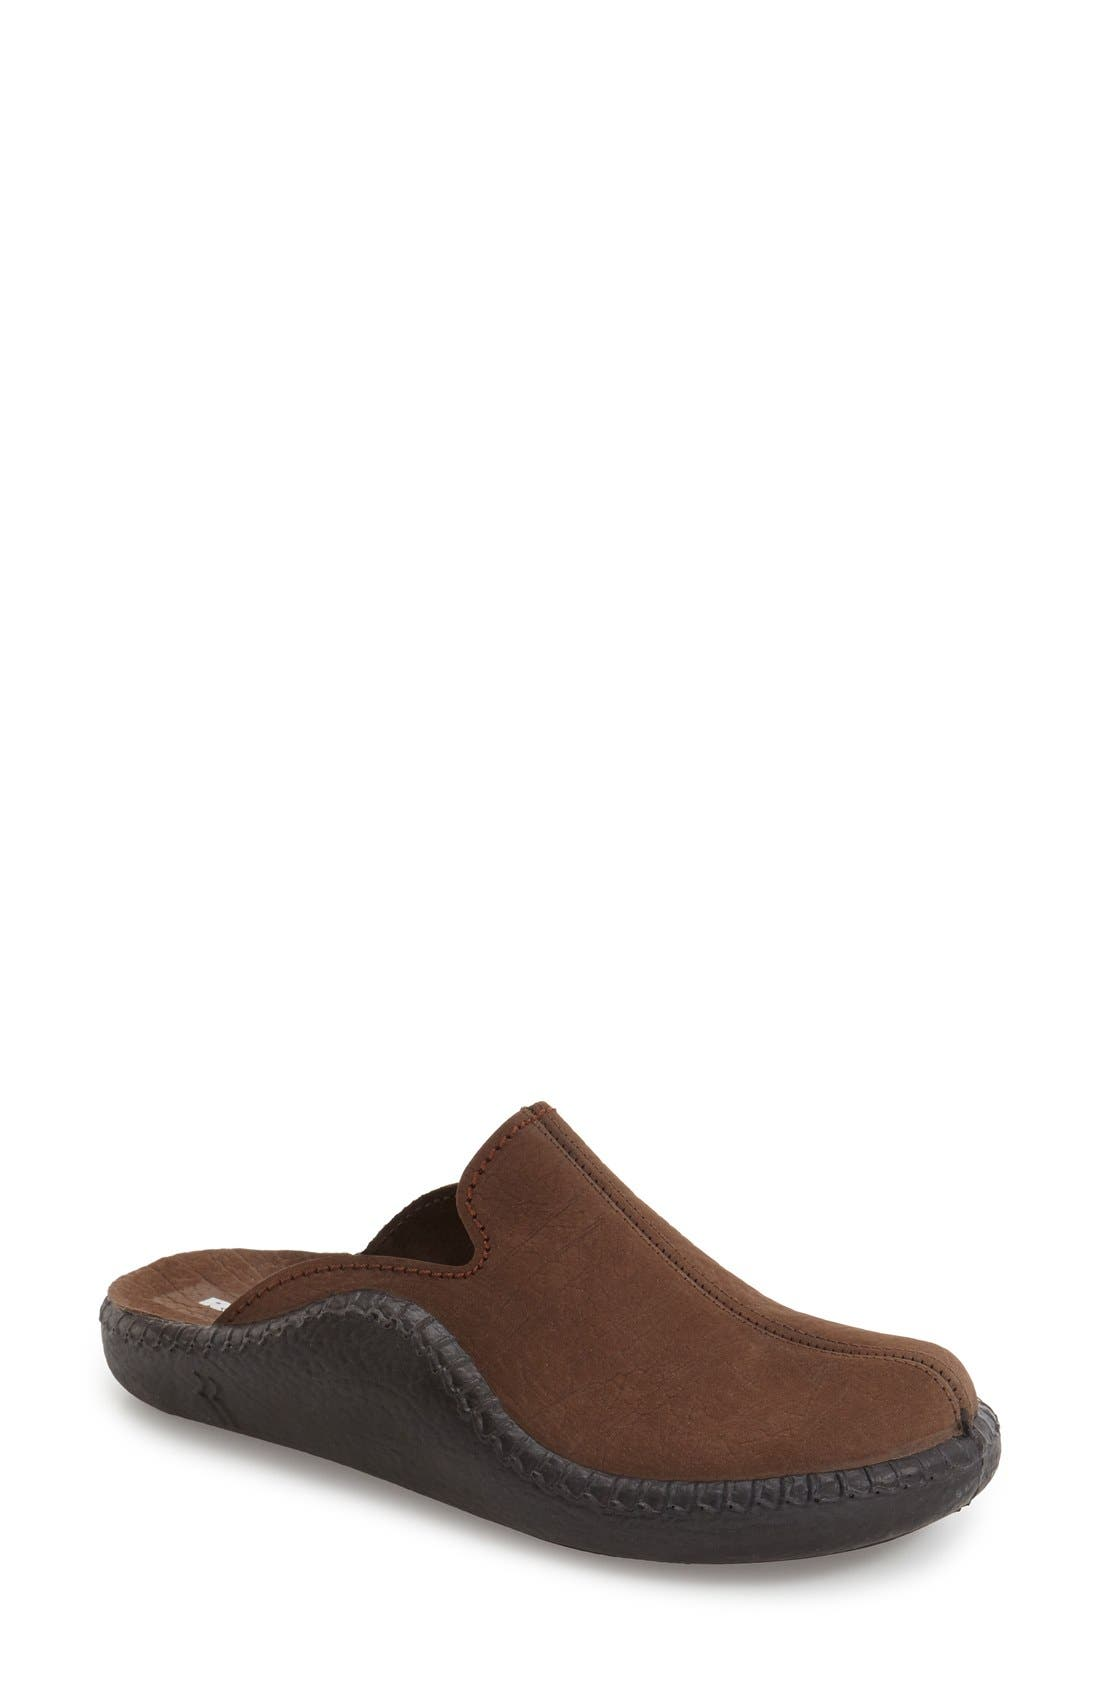 'Mokasso 102' Mule,                         Main,                         color, Brown Leather